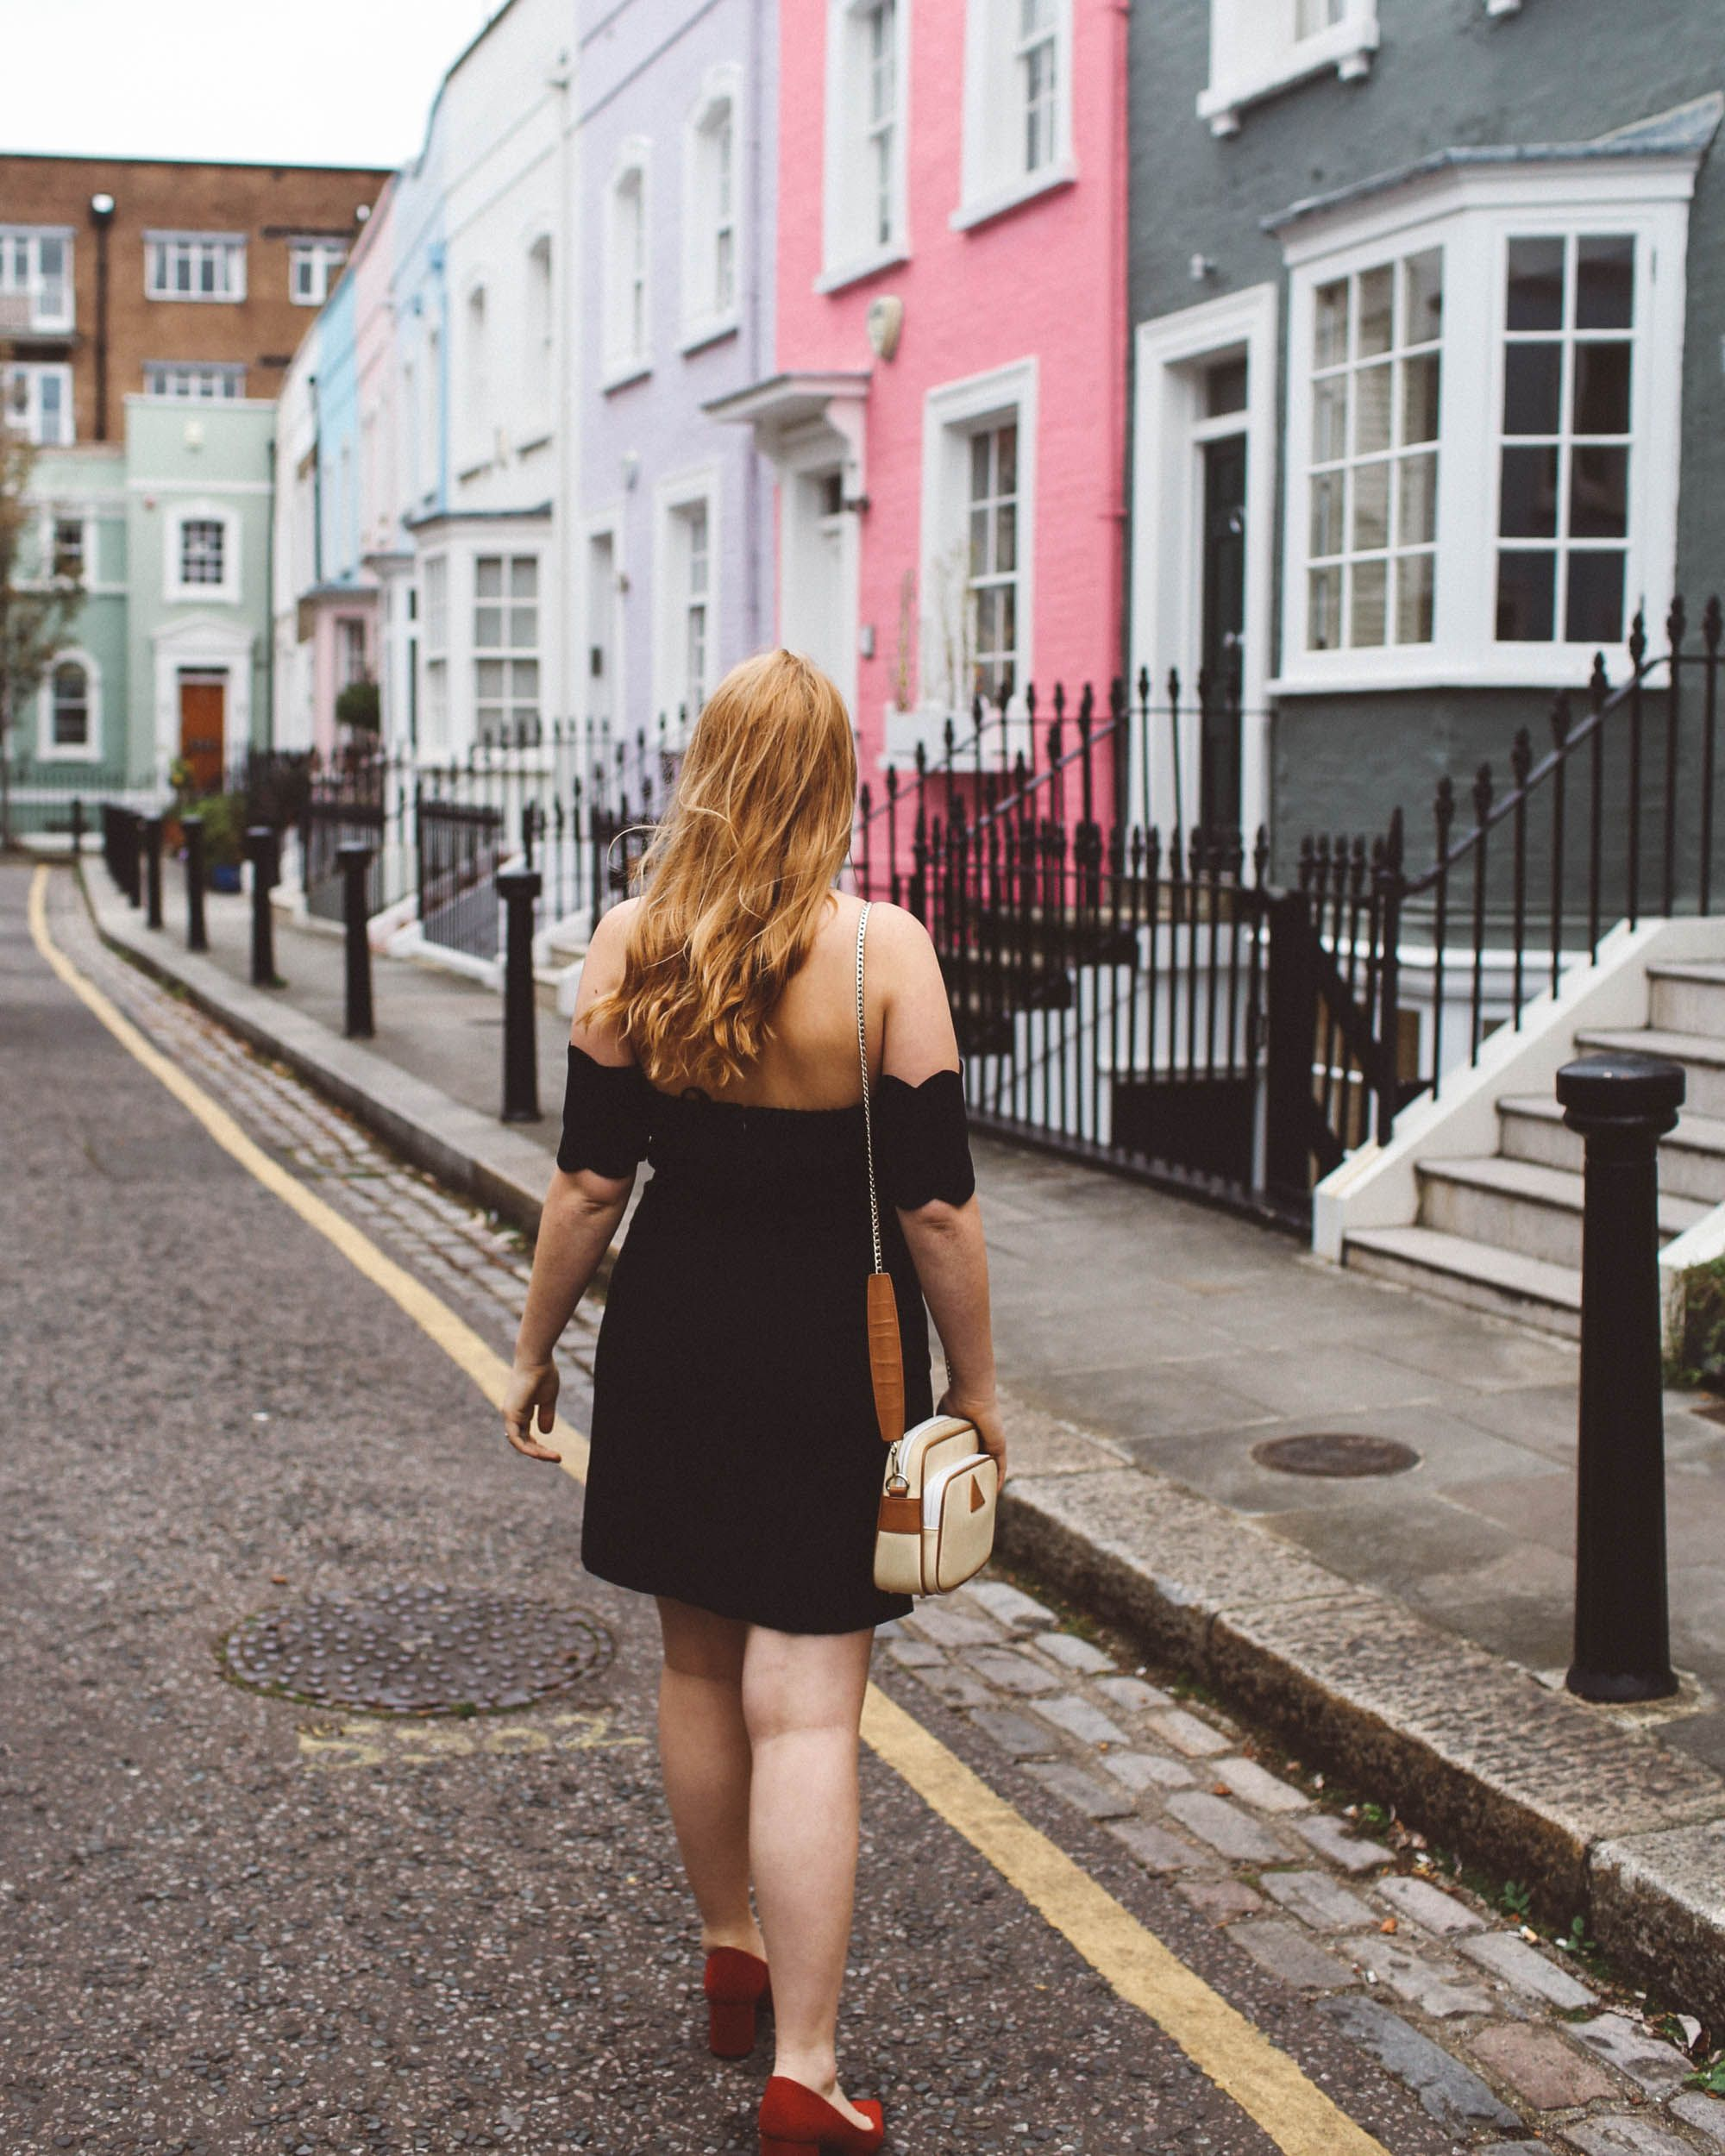 The best little black dress for curvy women. Best dress to wear in London. Club Monaco Scalloped black dress, pink houses Chelsea London,Red heels, The best anti-theft travel bag   read more here: http://whimsysoul.com/little-black-dress-london/ #littleblackdress #redshoes #chelsealondon #pastelhouses